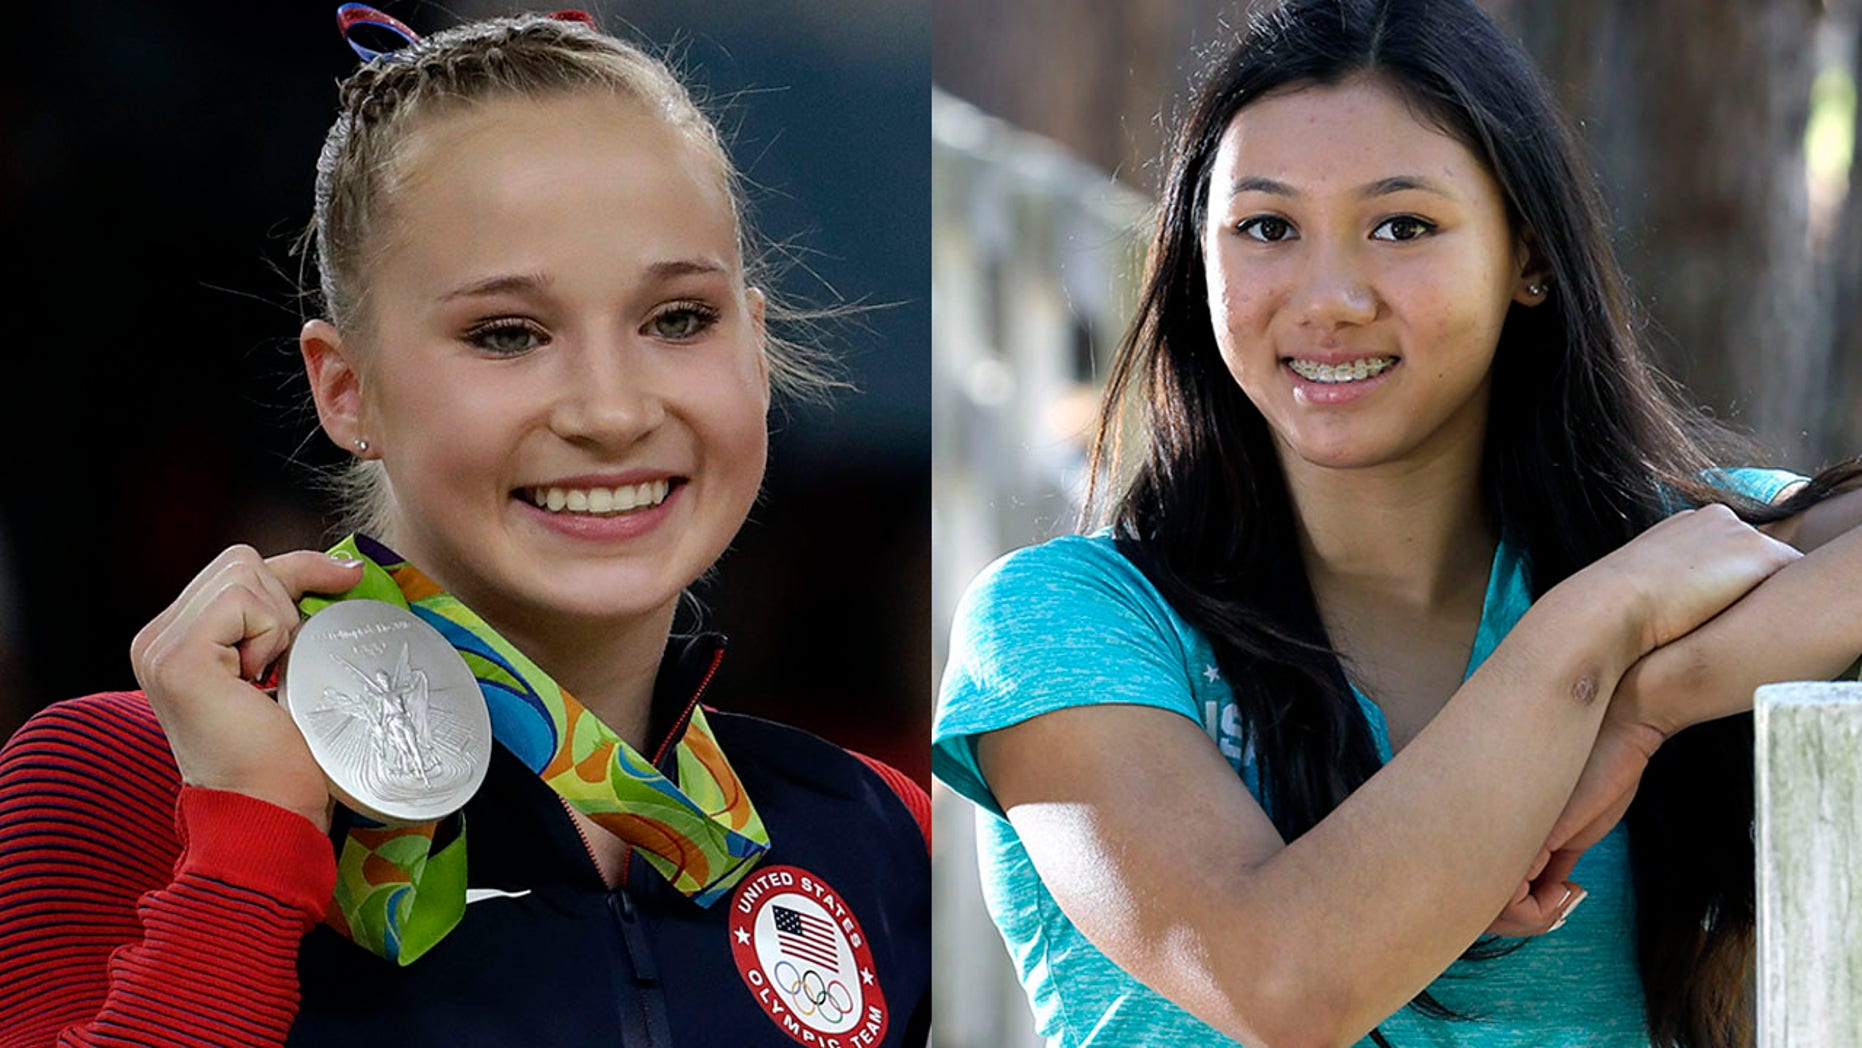 Madison Kocian, left, and Kyla Ross have both claimed they were sexually abused by former USA Gymnastics team doctor Larry Nassar.